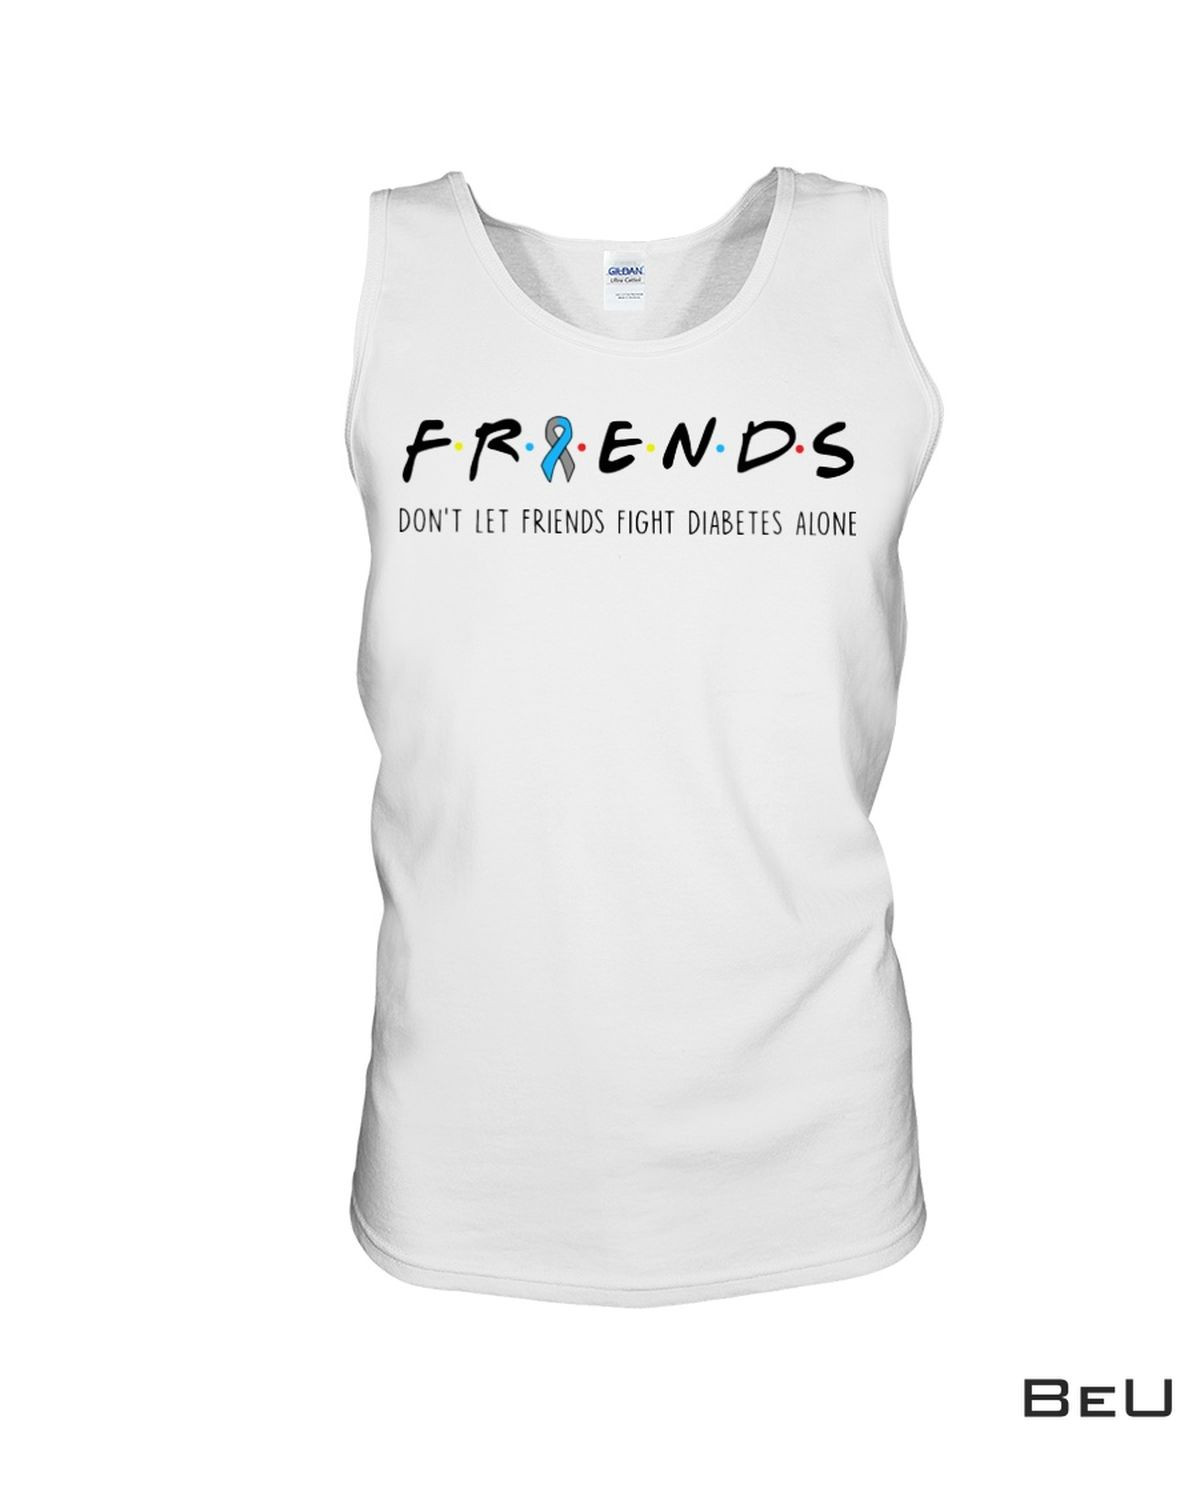 Where To Buy Friends Don't Let Friends Fight Diabetes Alone Shirt